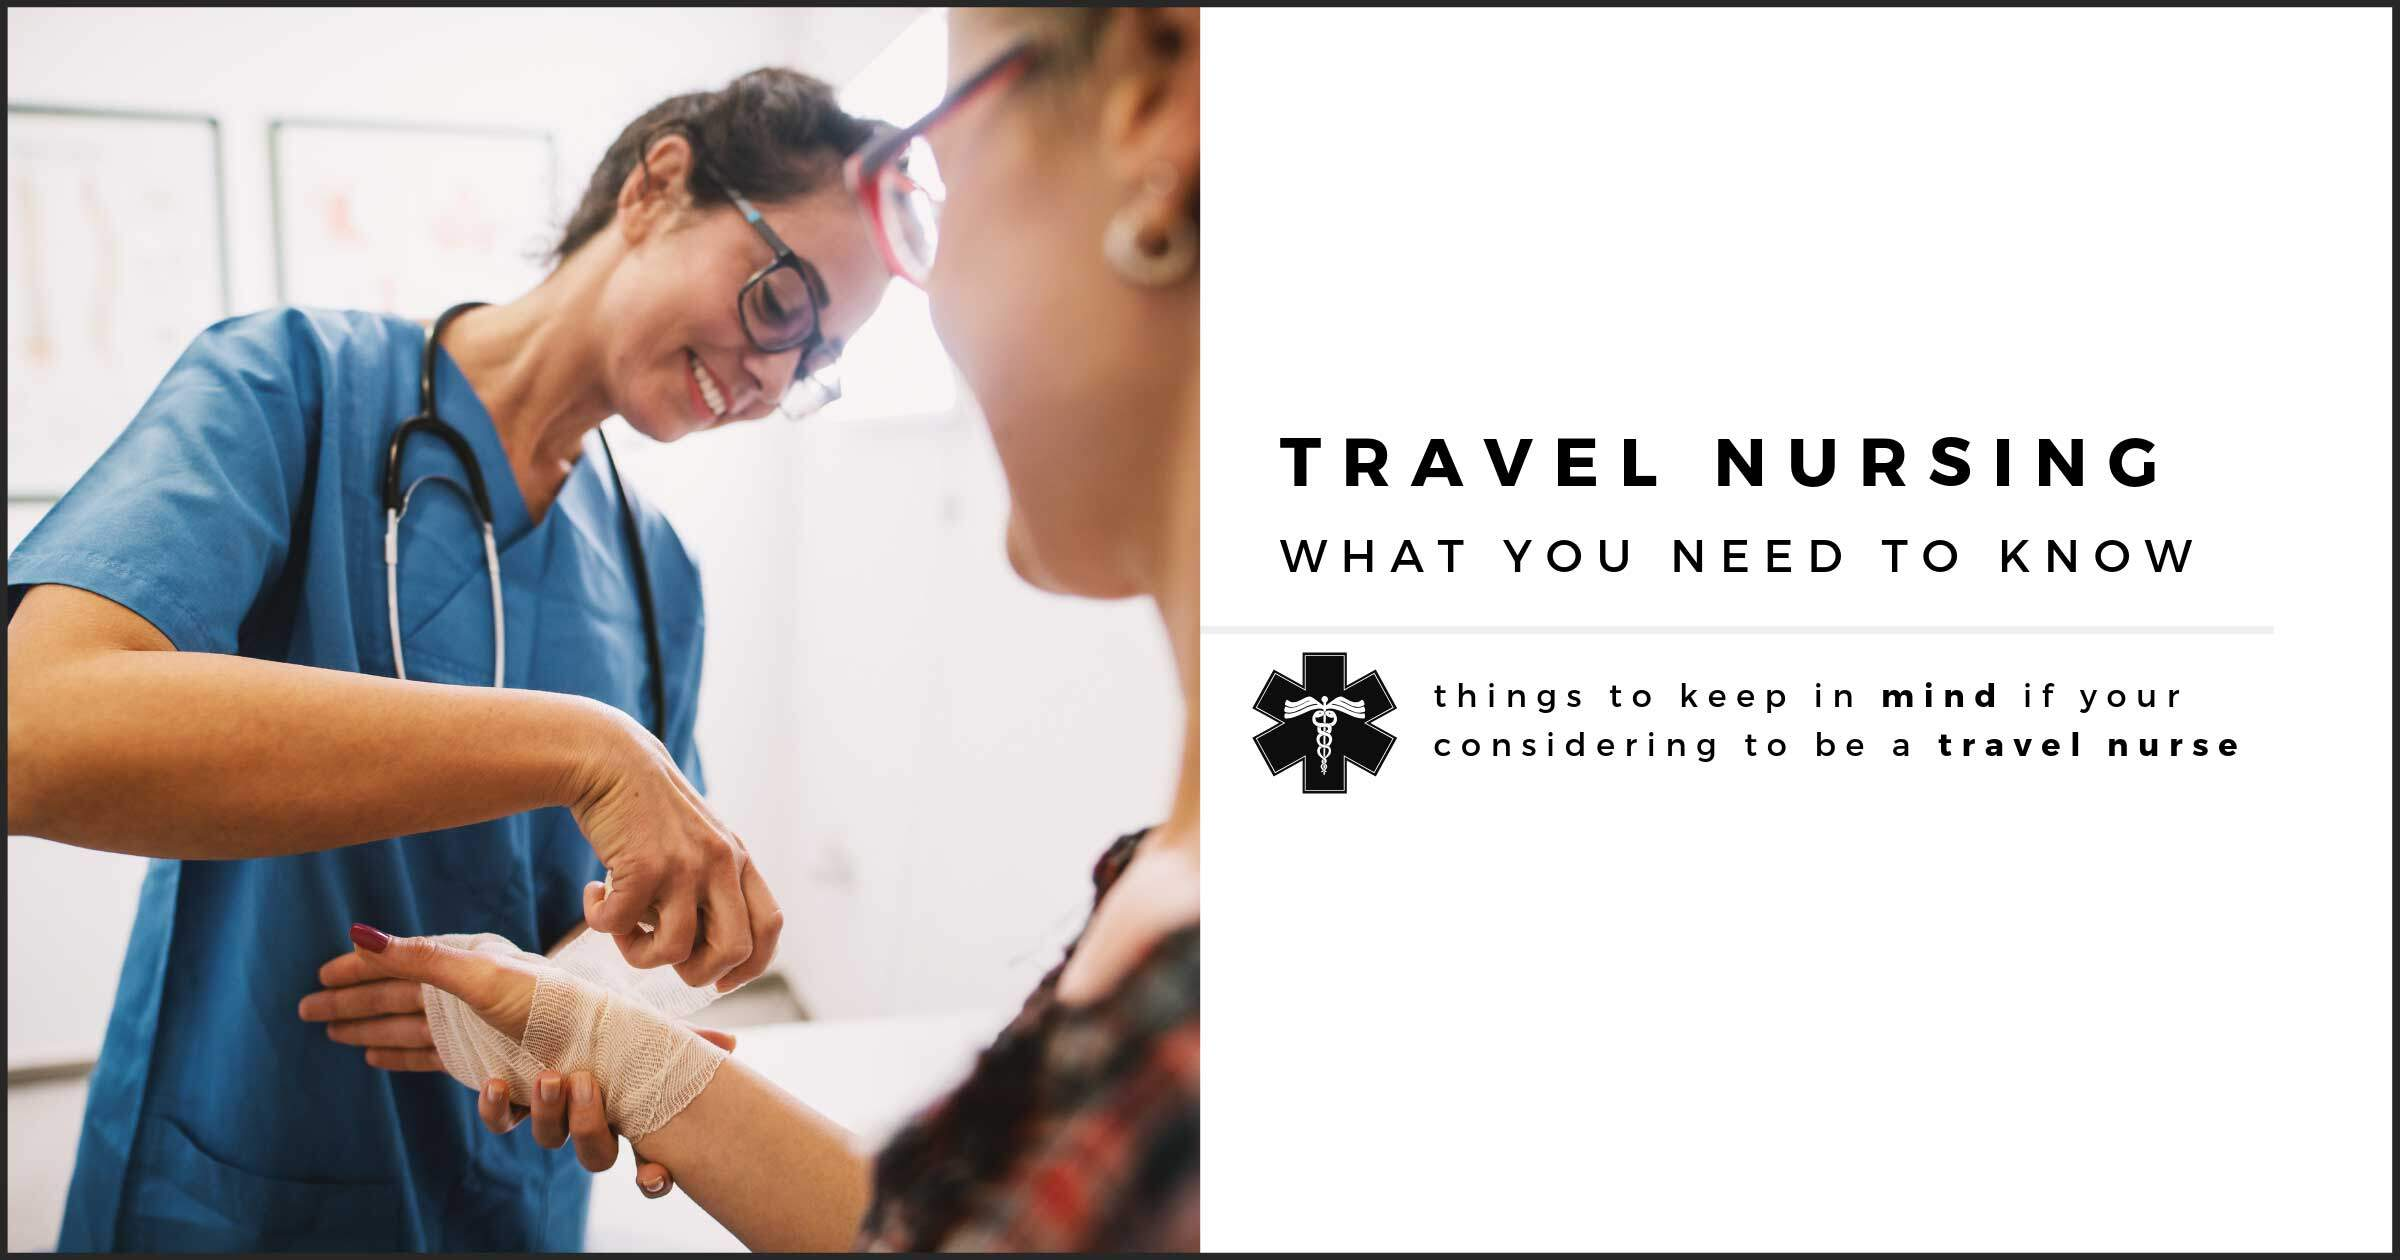 Pre-Requisites to Becoming a Travel Nurse